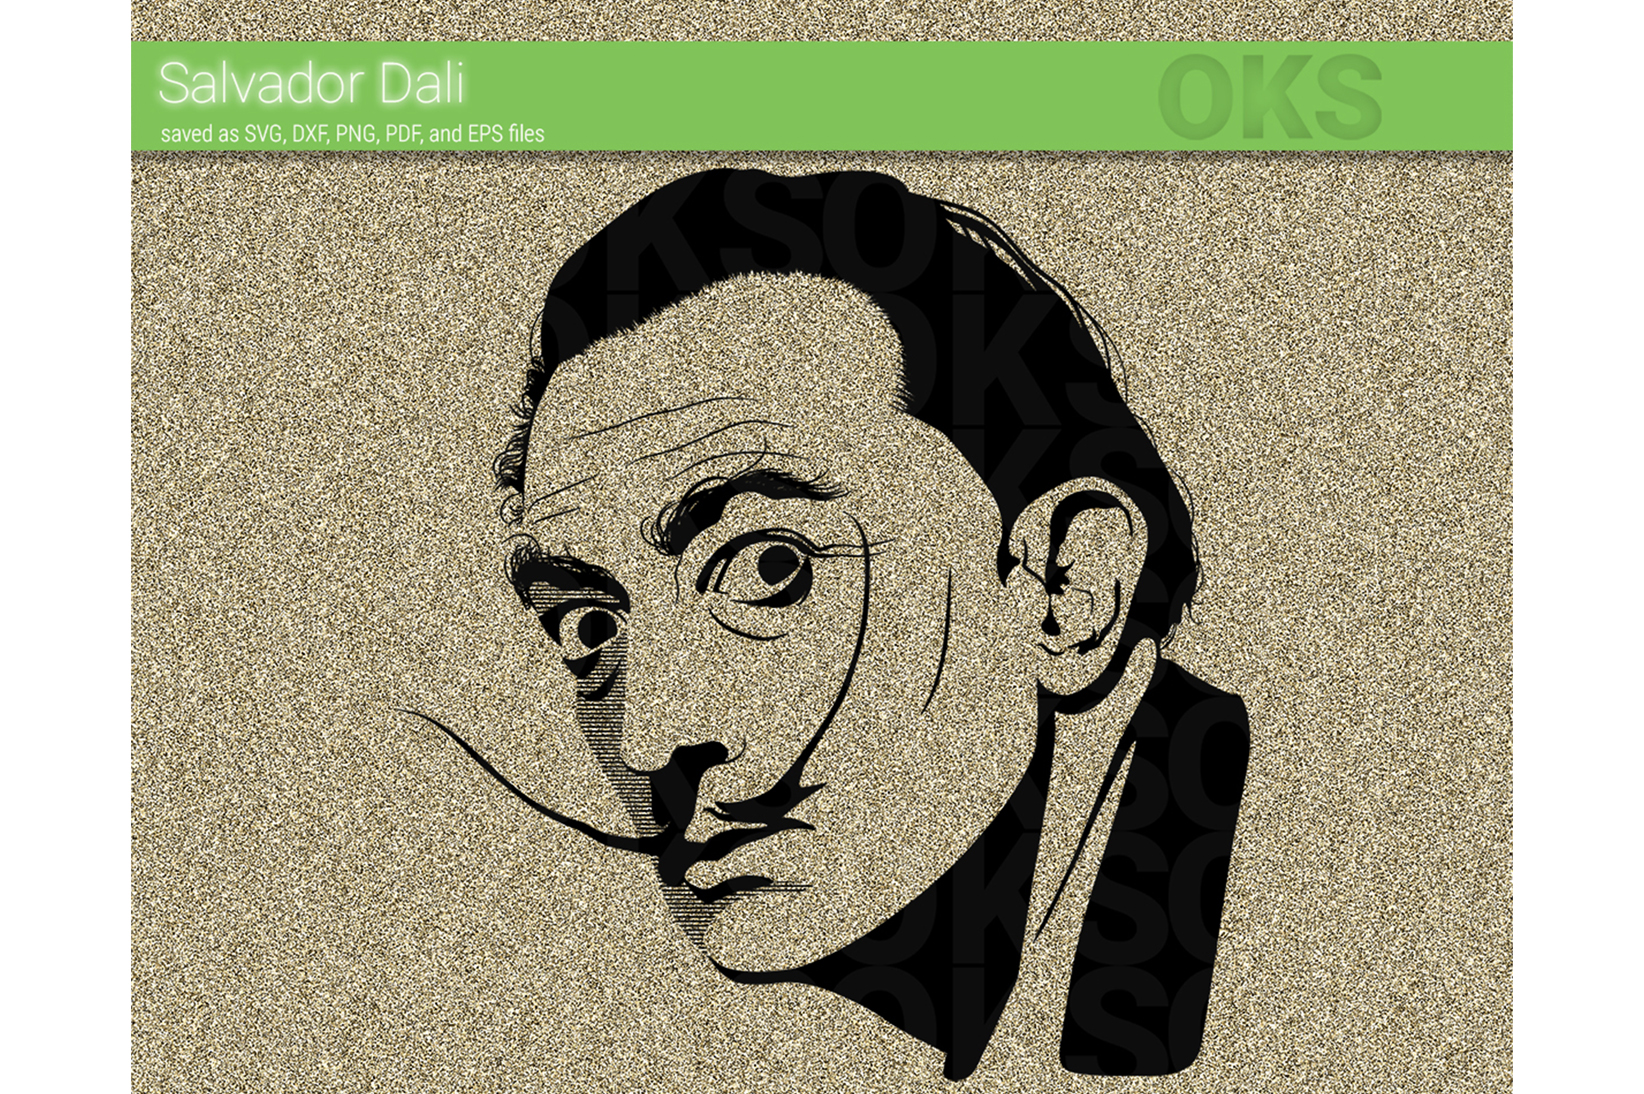 Download Free Salvador Dali Svg Vector Graphic By Crafteroks Creative Fabrica for Cricut Explore, Silhouette and other cutting machines.